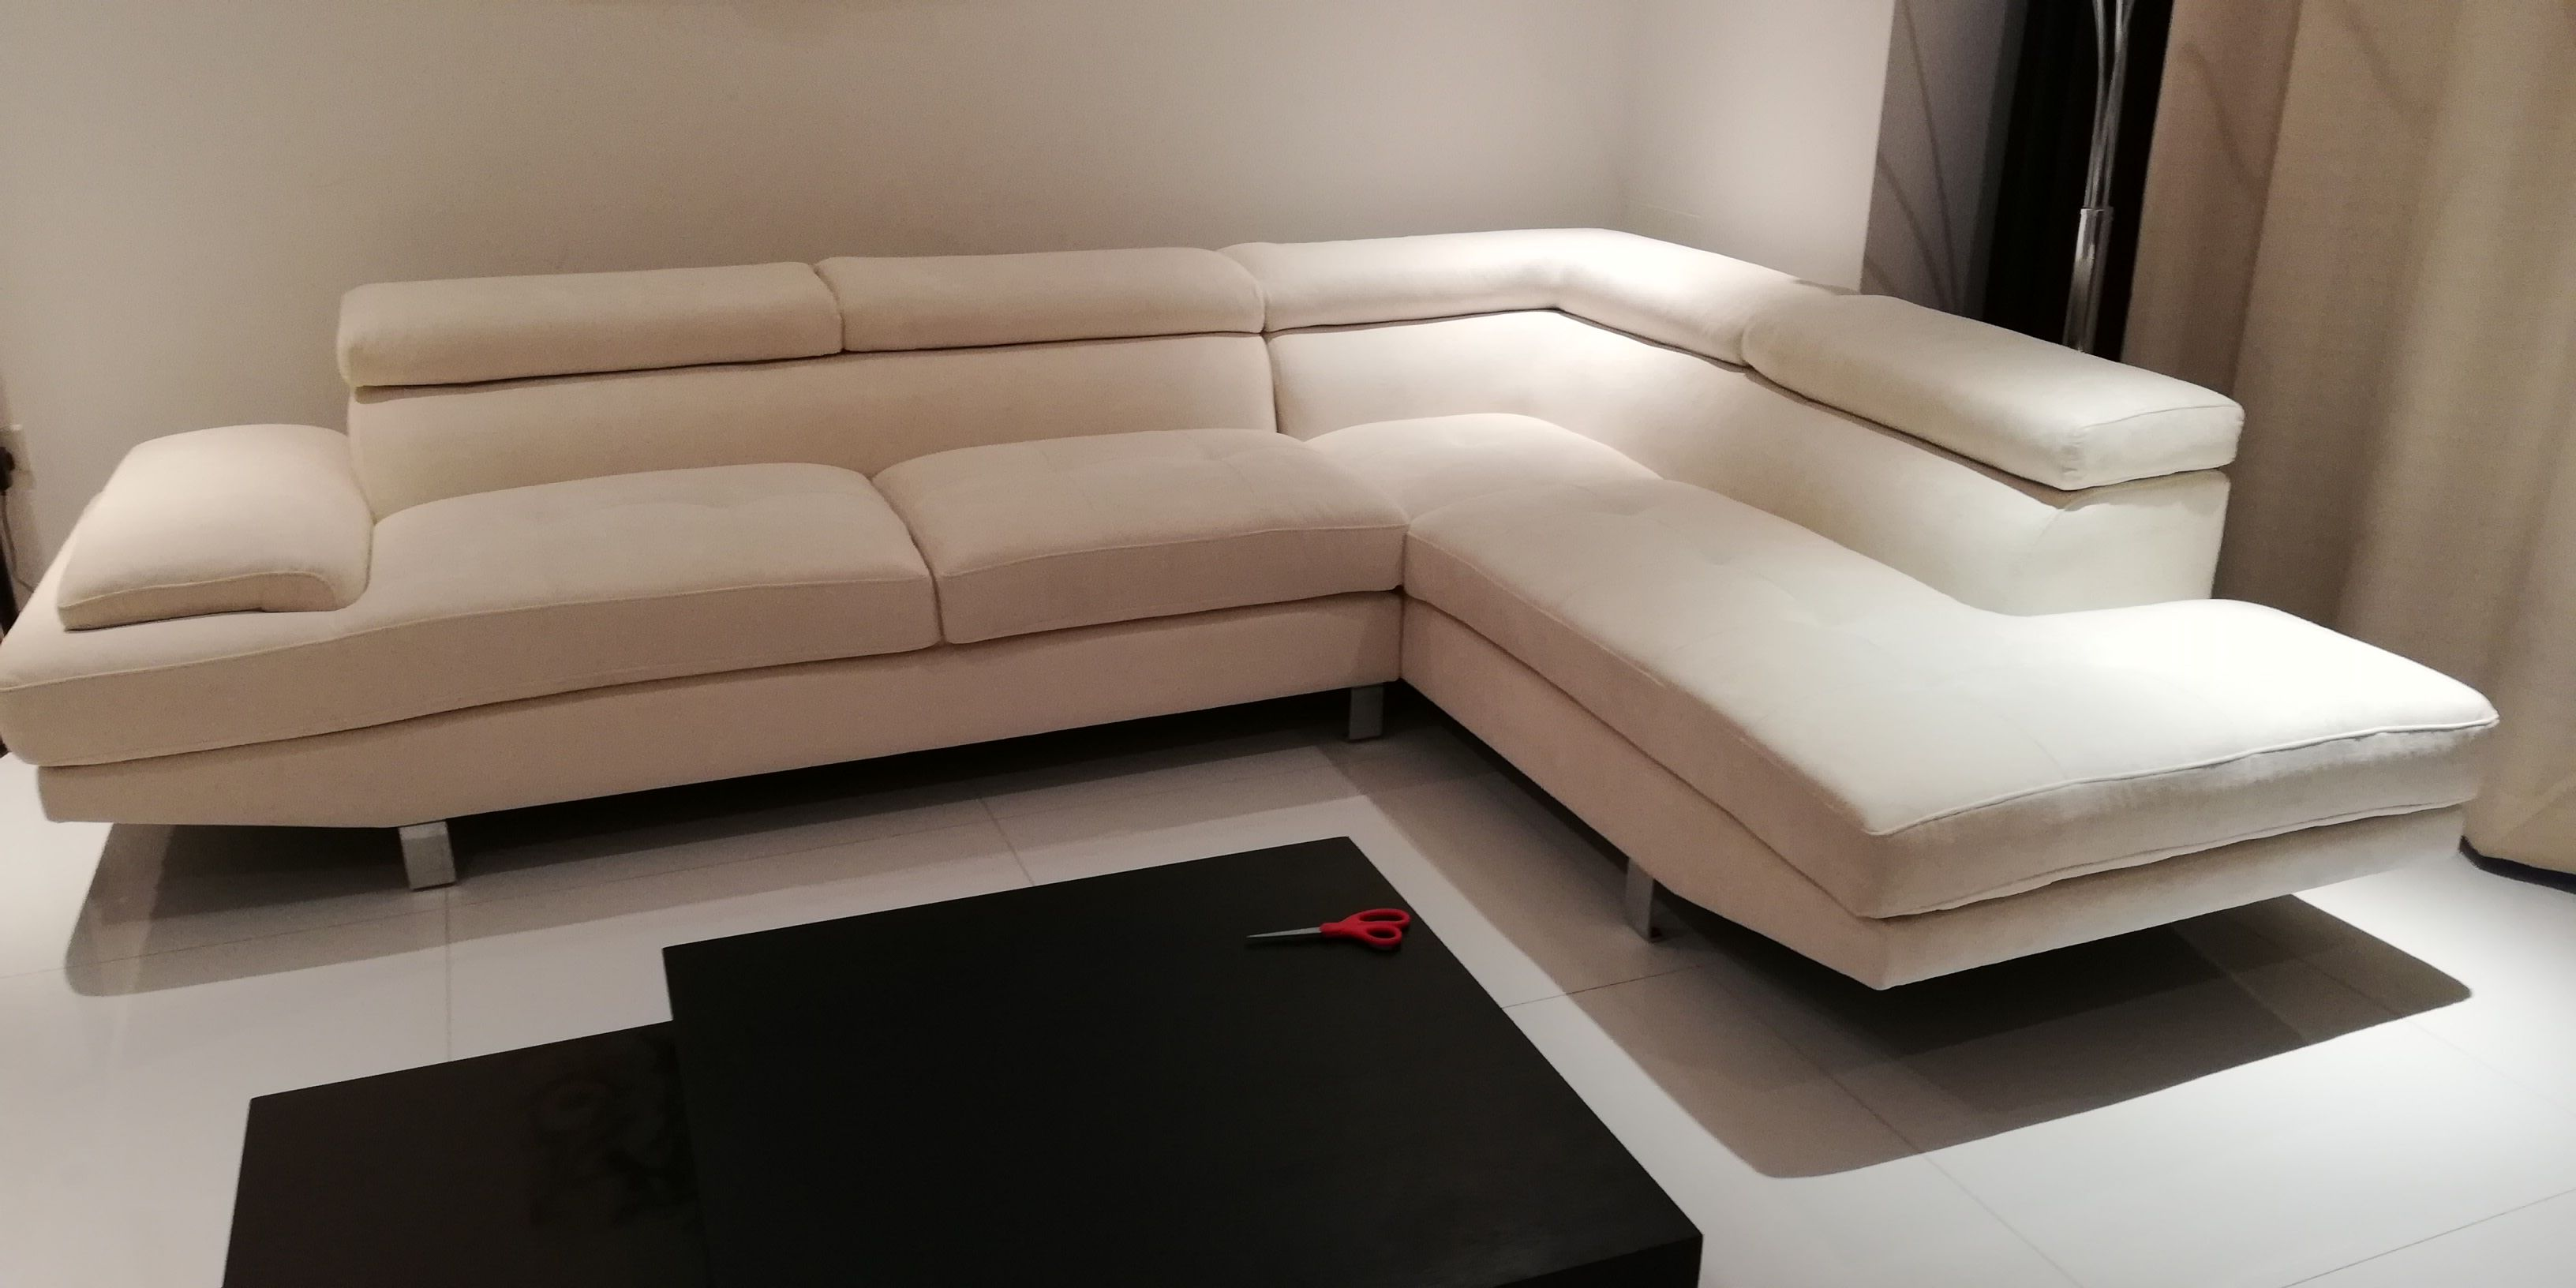 Pin By Furnishing Dubai On Sofa Upholstery In Dubai Chair Upholstery Premium Sofa Sofa Upholstery